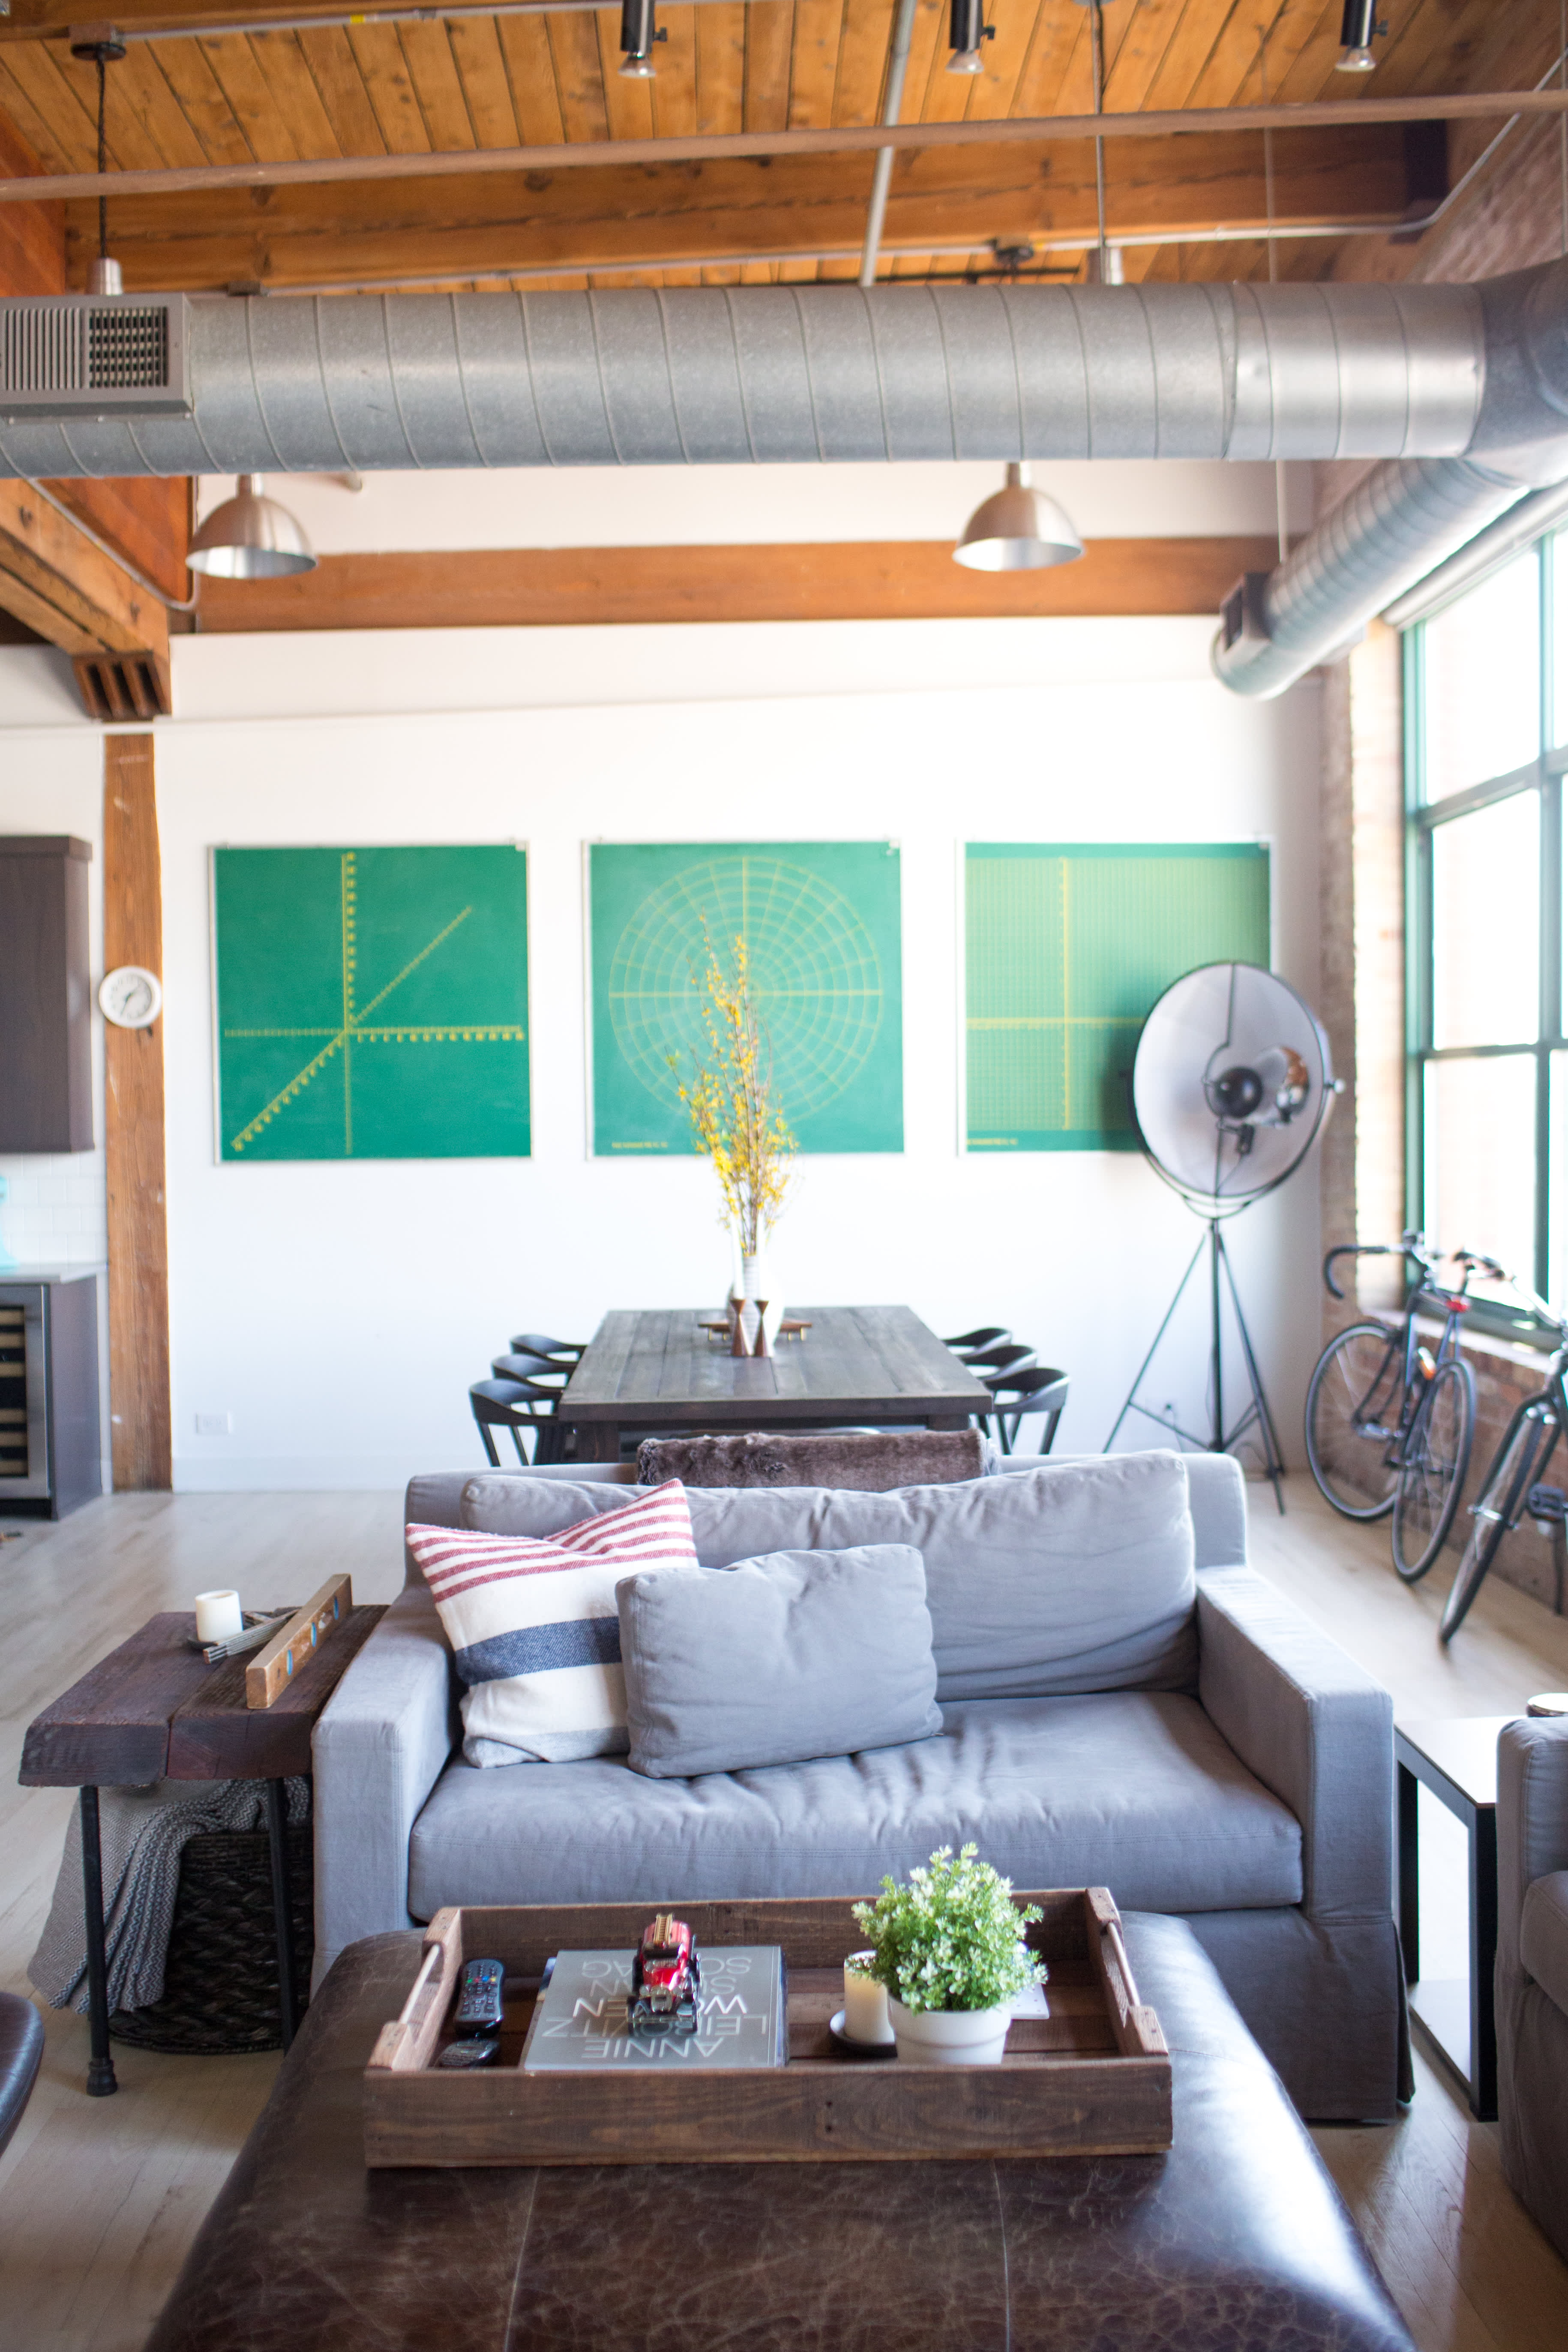 House Tour: Cozy, Comfortable Style in Chicago | Apartment ...